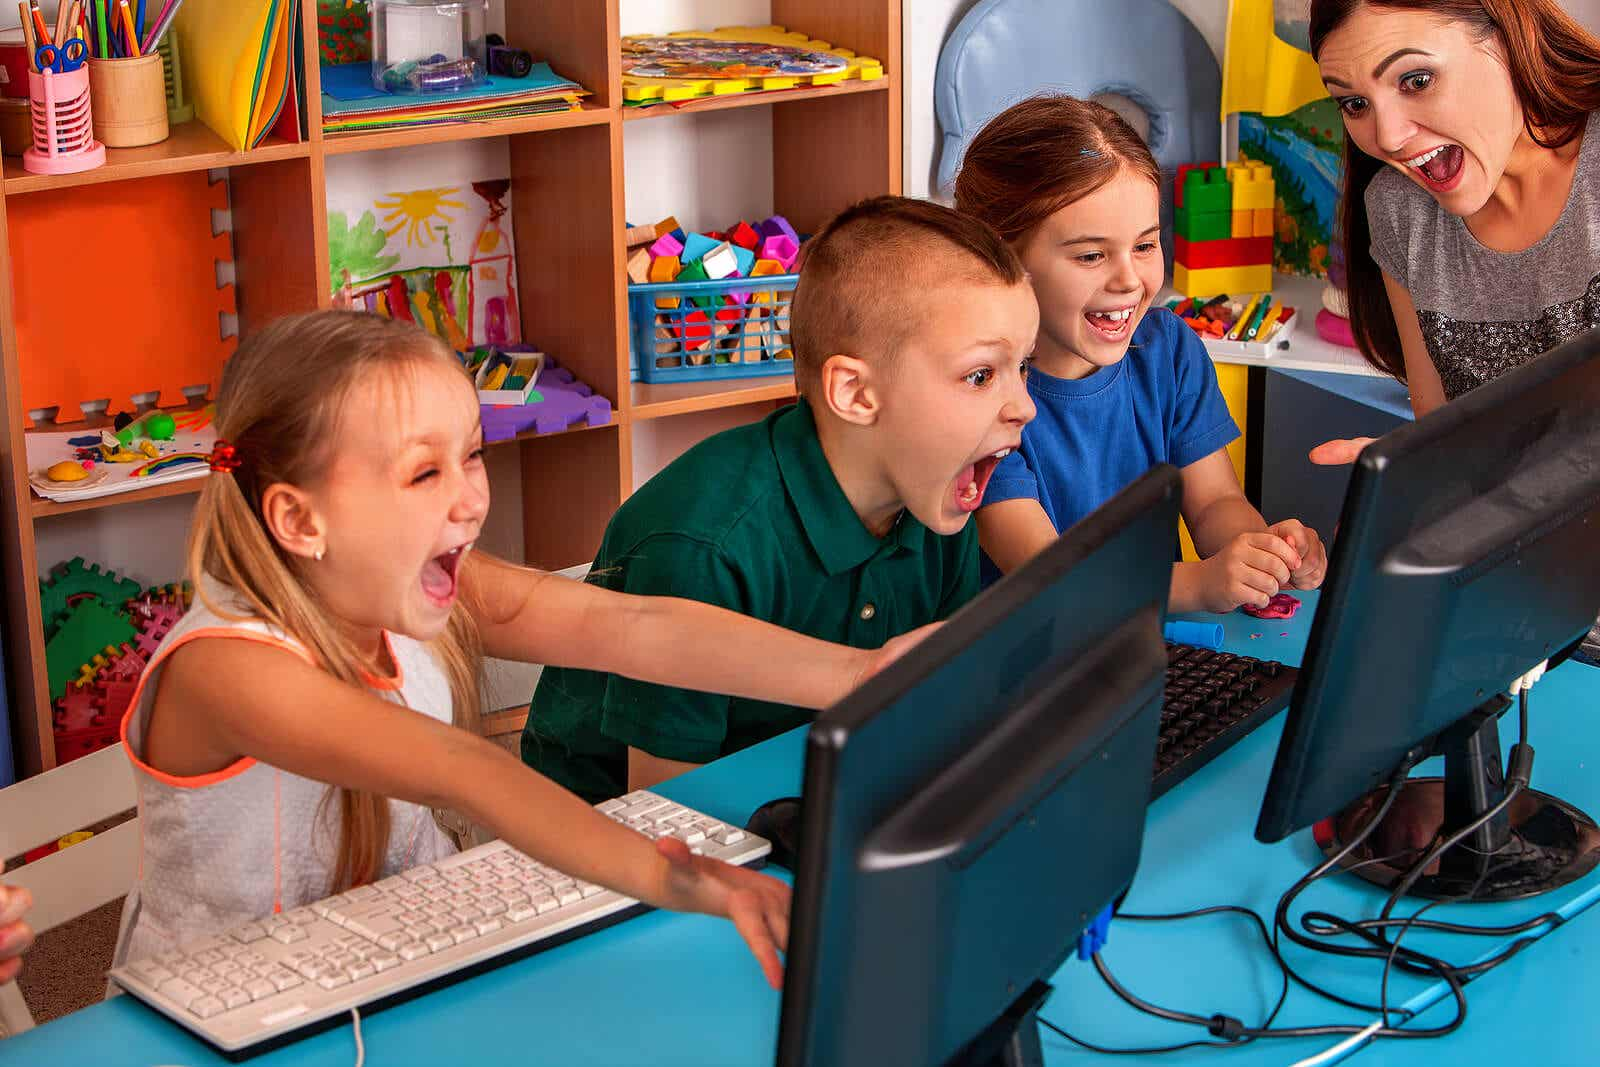 Elementary students excited to learn on computers.